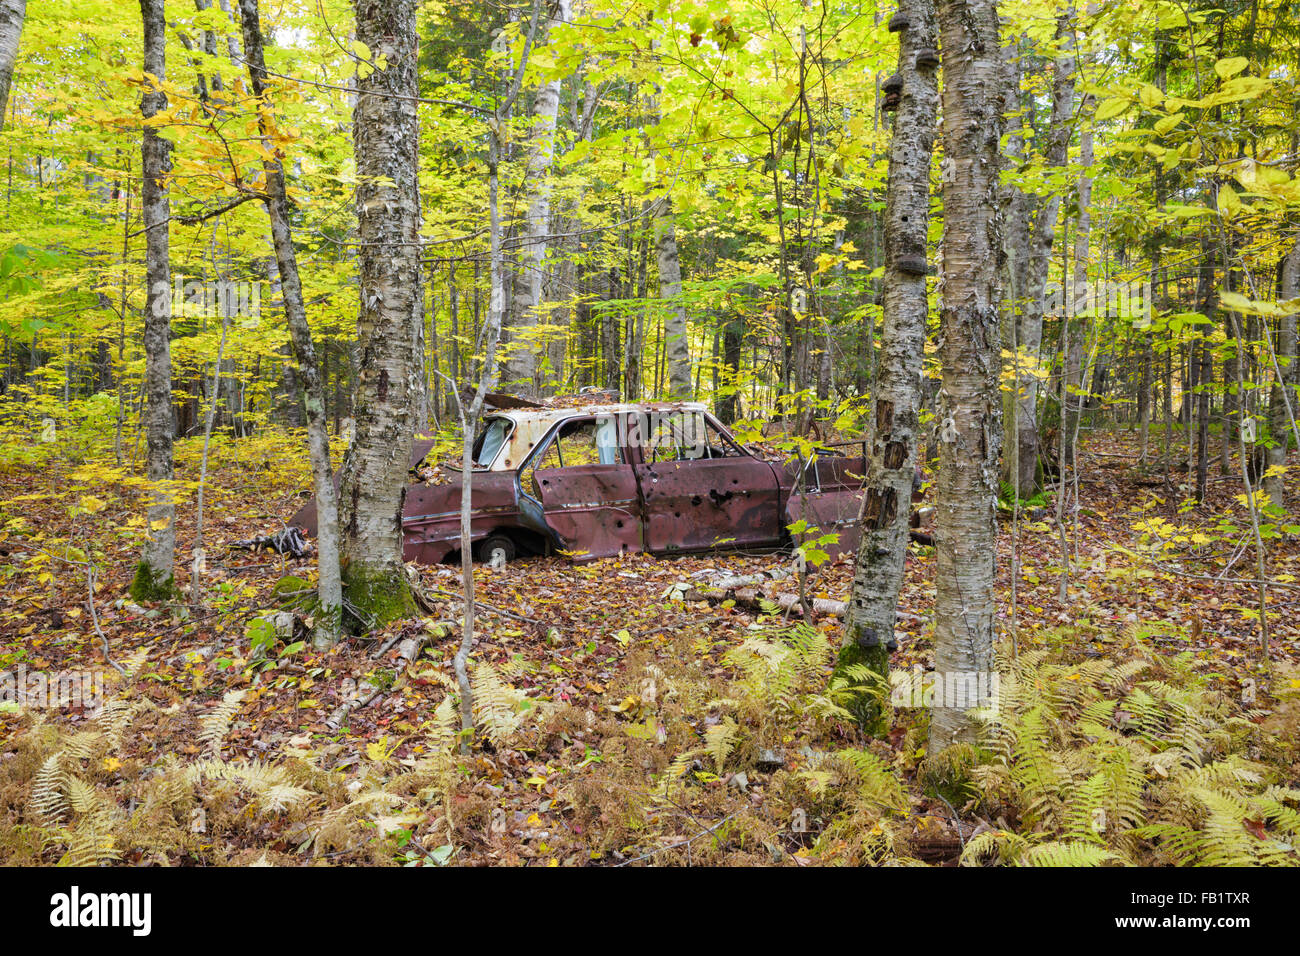 Abandoned car at the site of the old North Woodstock Civilian Conservation Corps Camp in North Woodstock, New Hampshire. - Stock Image